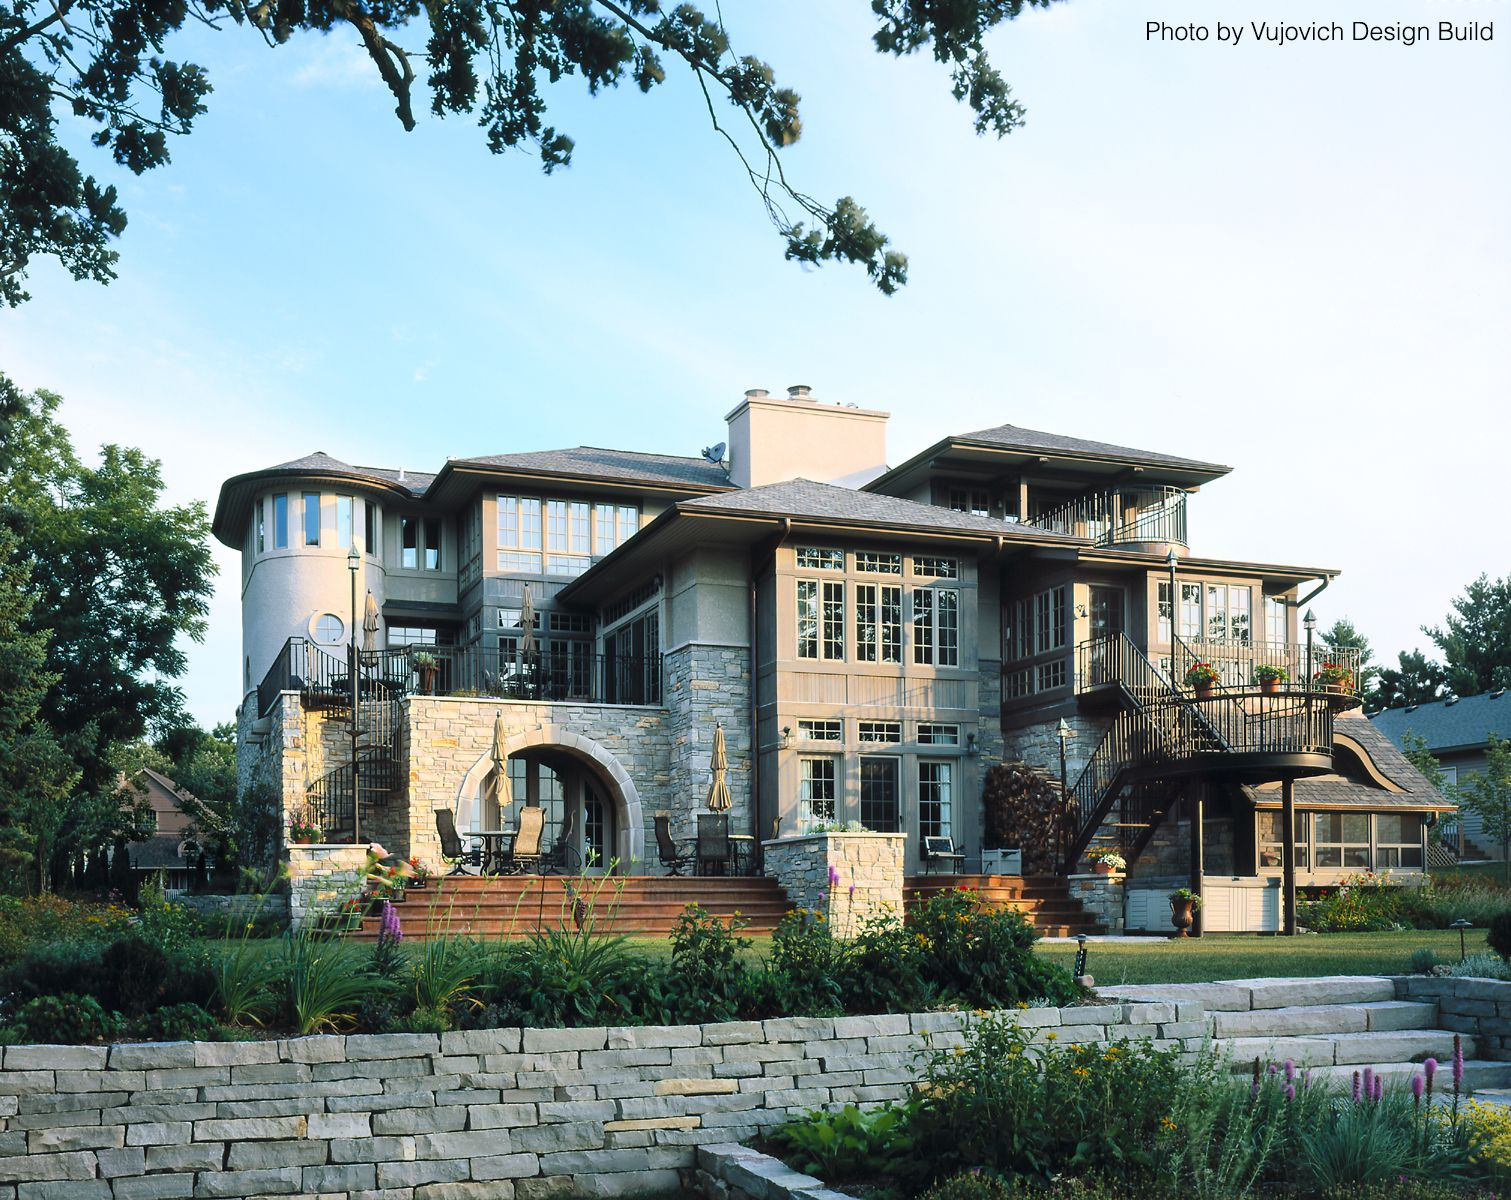 Amazing Very Interesting Home Exterior With Multiple Entry Points, Wide Stairs  Leading Outside, A Winding